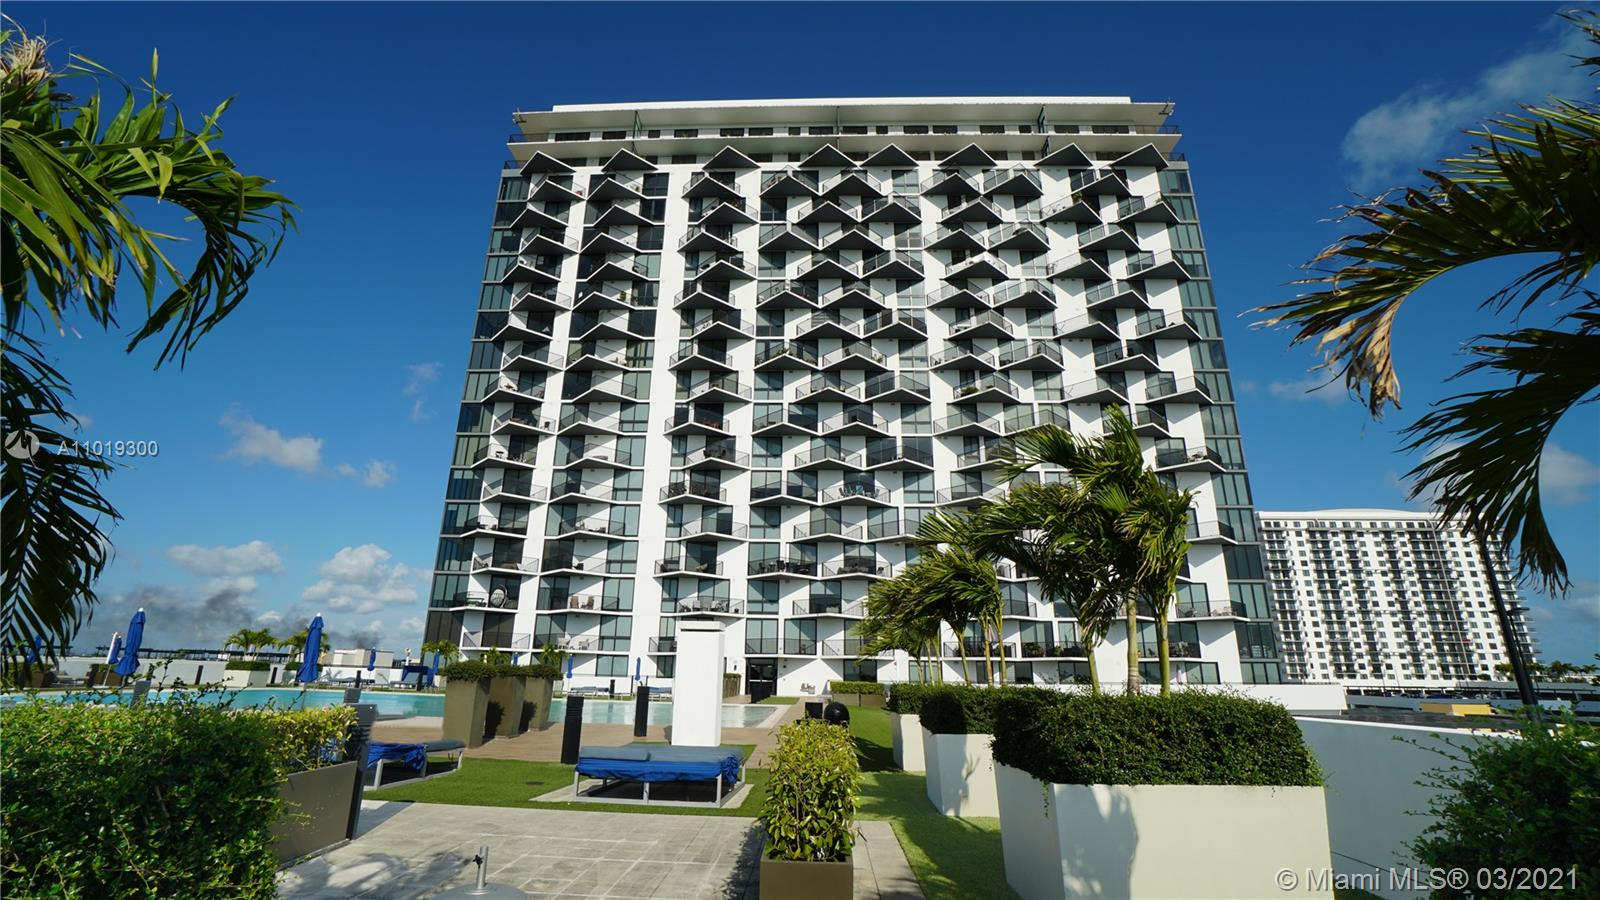 5300 Paseo #1609 - 5300 NW 85th Ave #1609, Doral, FL 33166